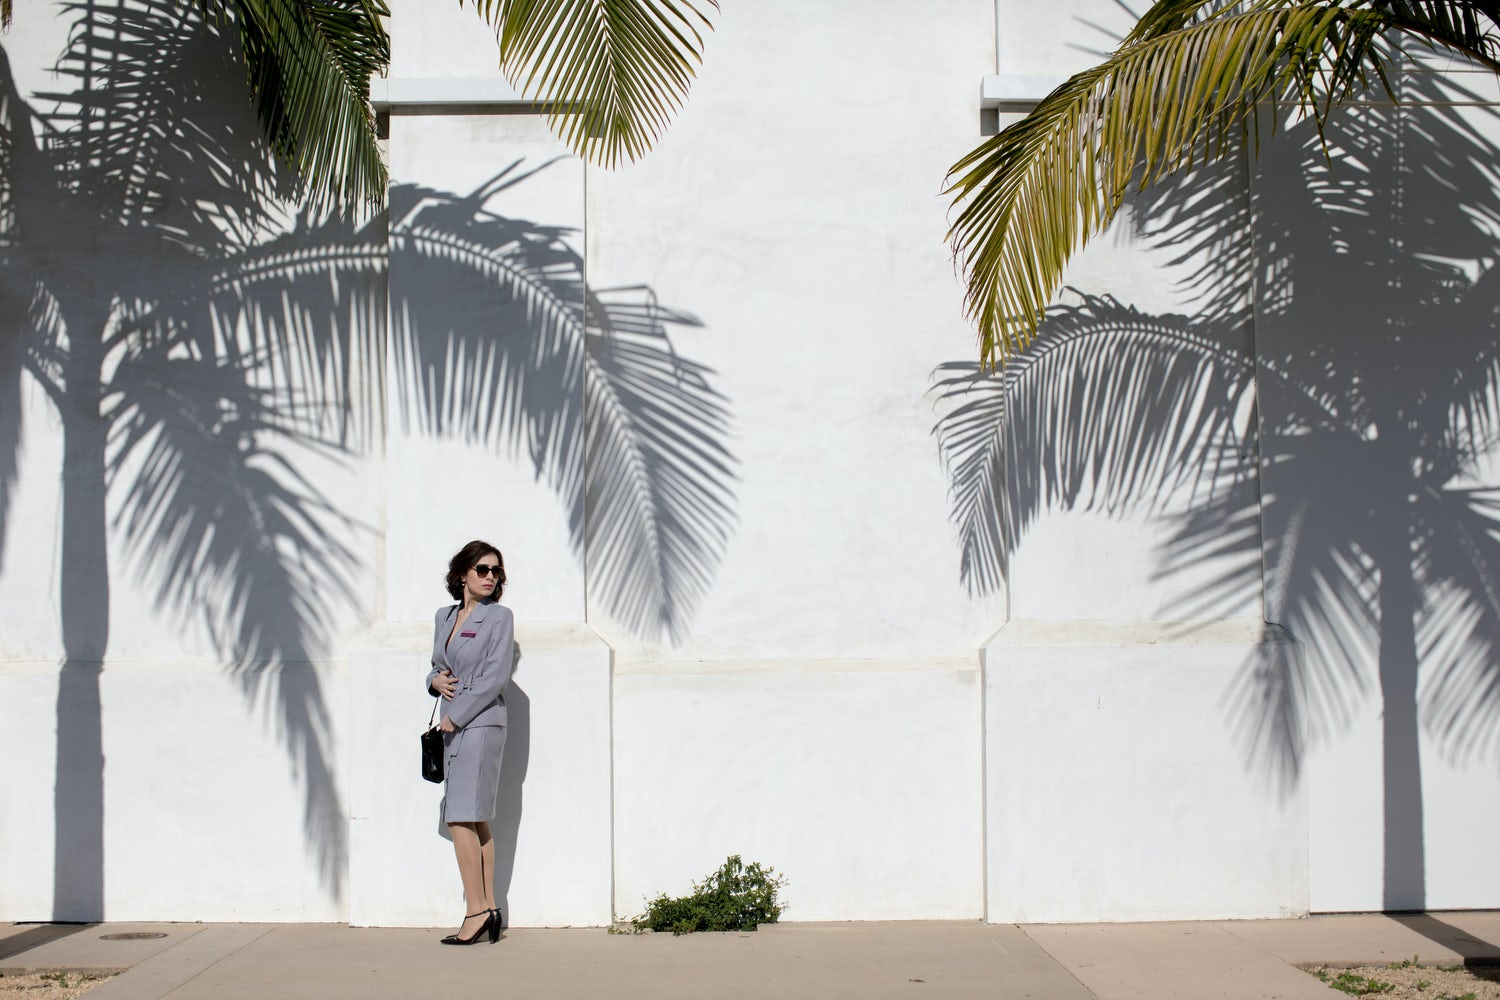 Actor playing Diana Markosian mother stood by a wall under palm trees